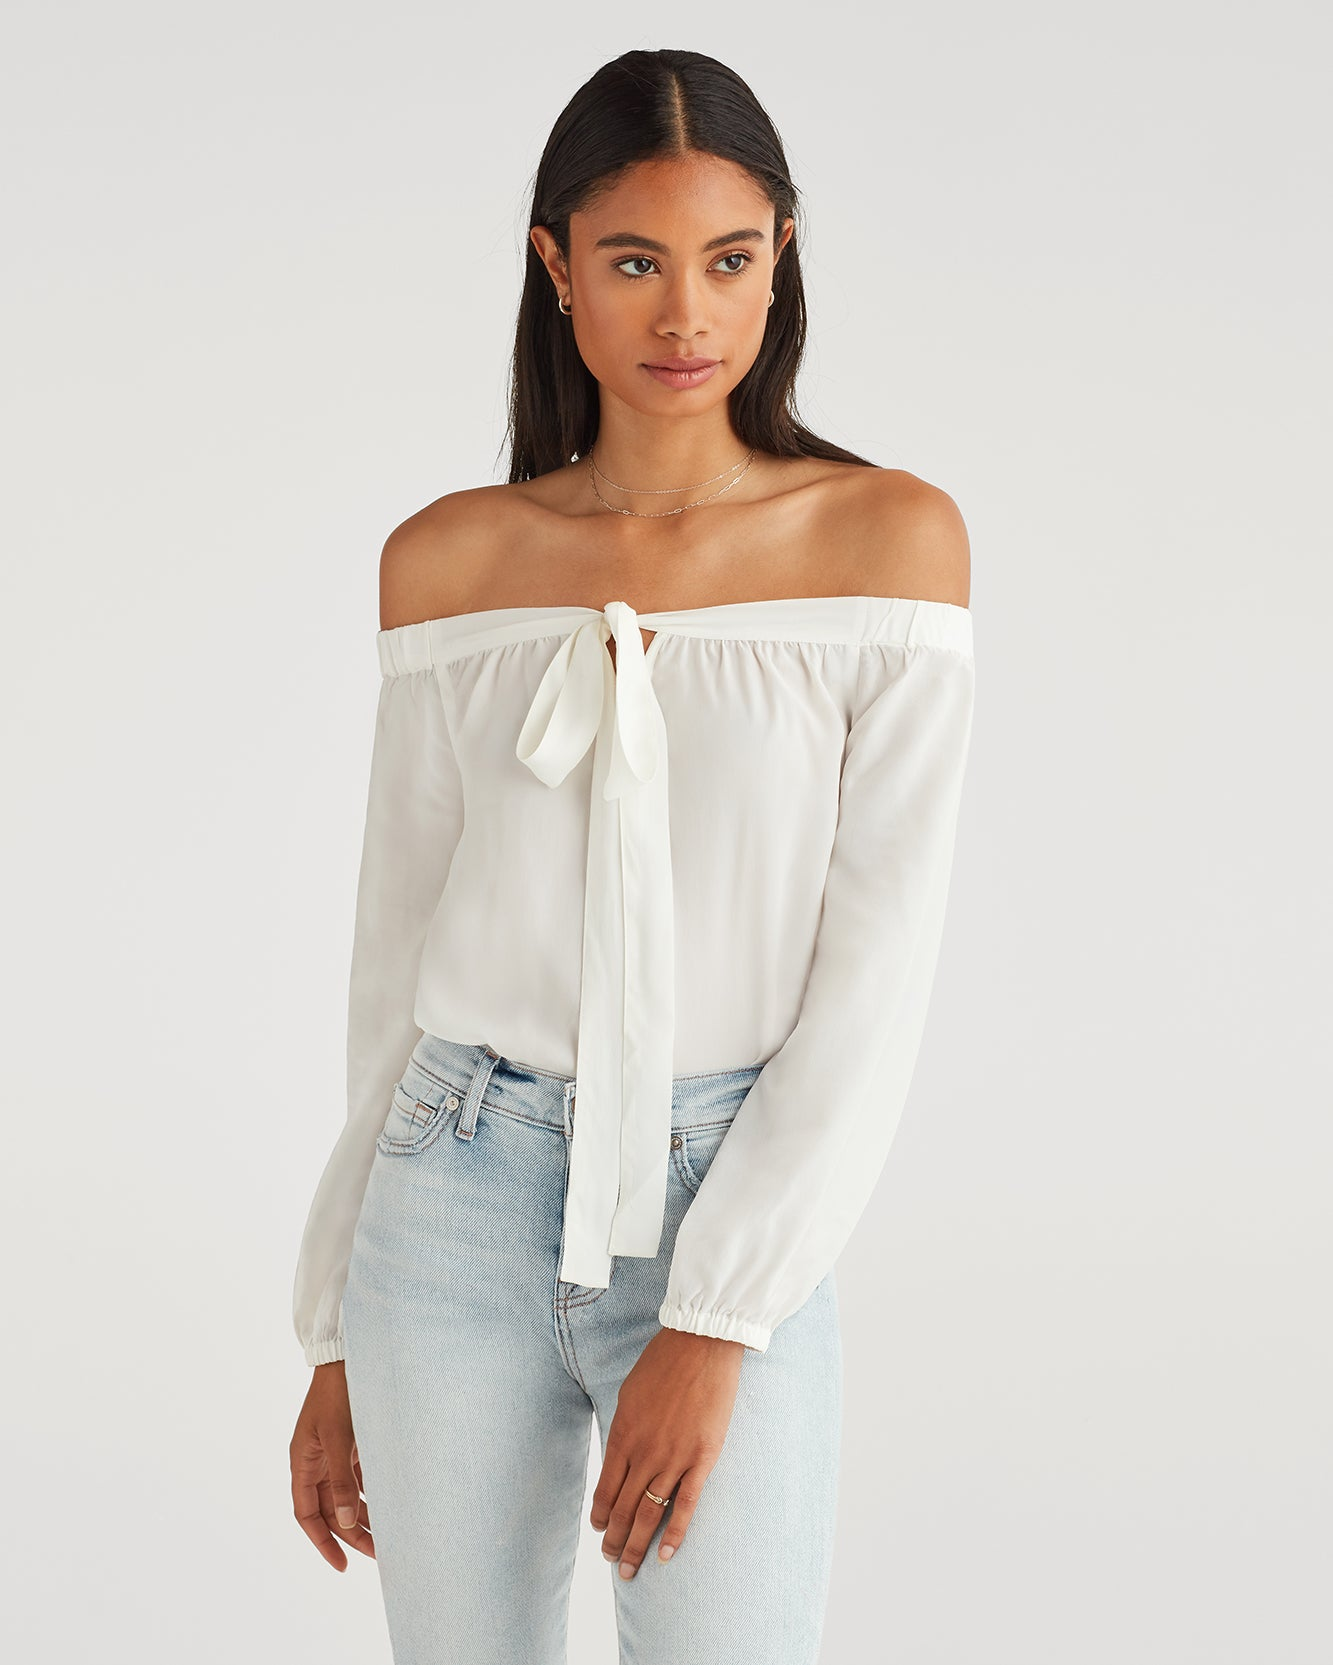 Image of Cross Strap Blouse in Soft White